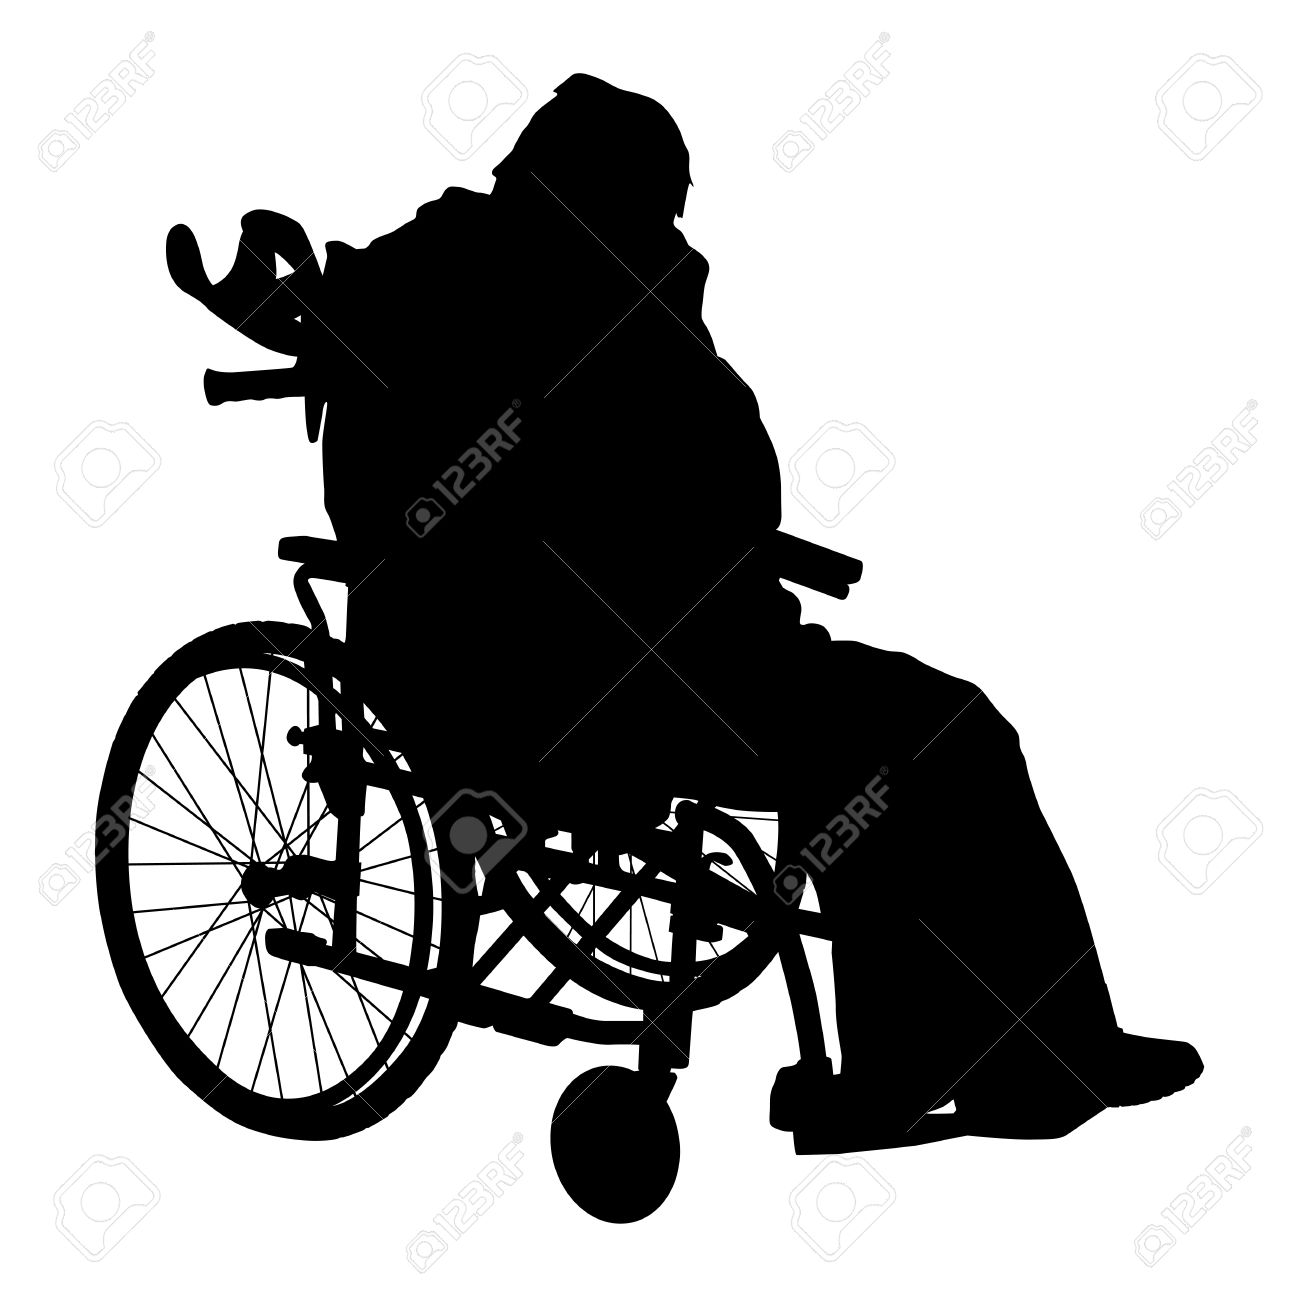 One Handicapped Man In Wheelchair Silhouette Royalty Free Cliparts.